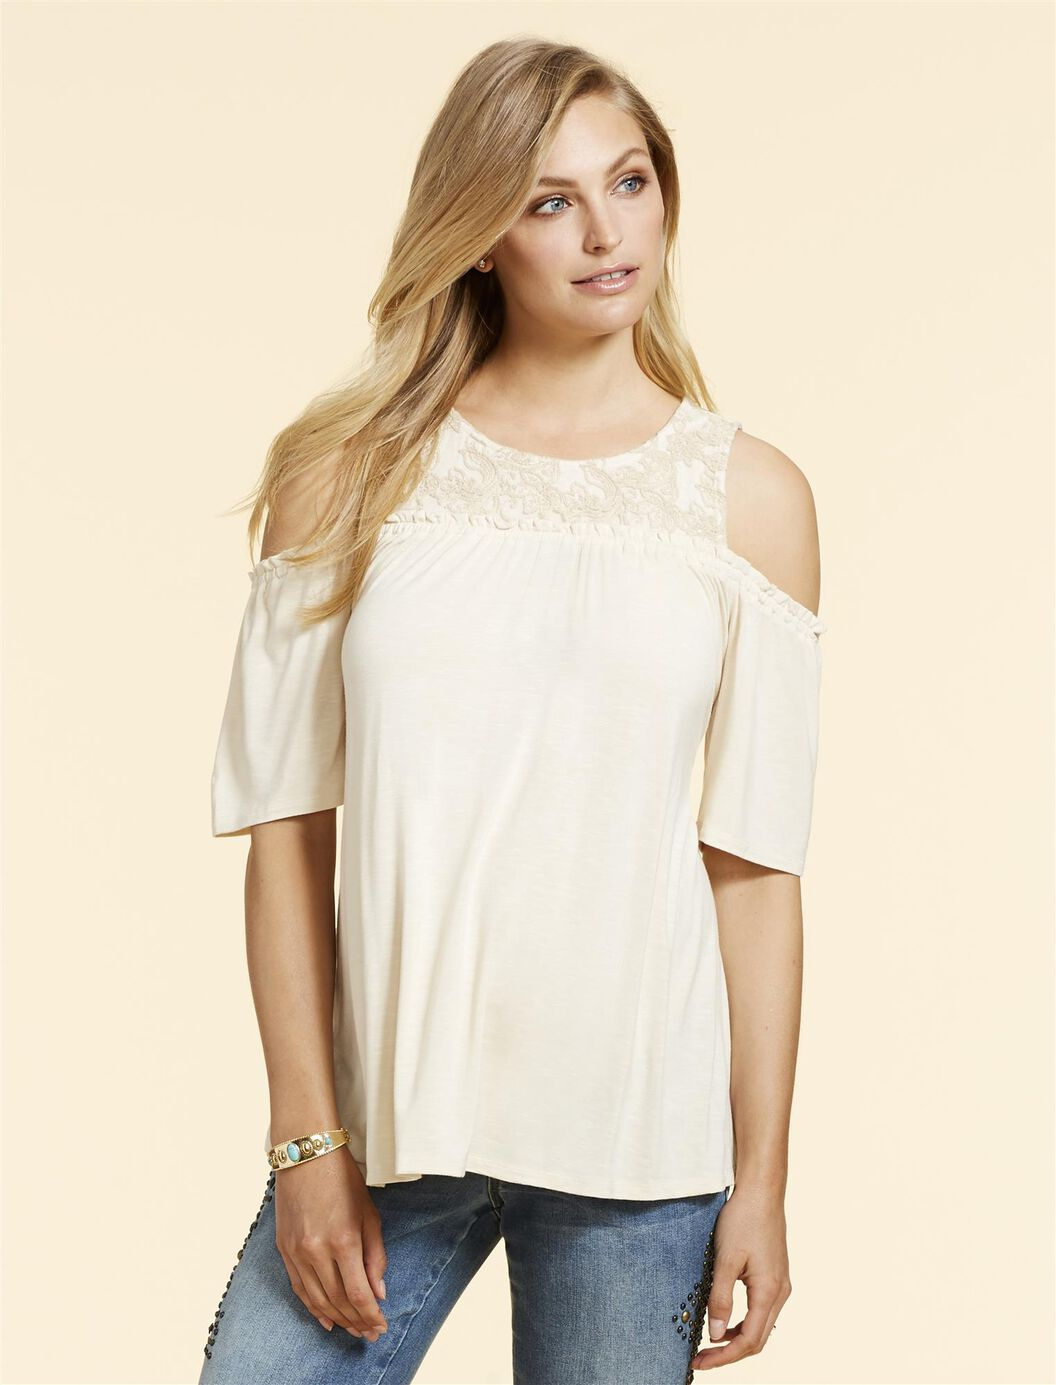 Jessica Simpson Cold Shoulder Maternity Top at Motherhood Maternity in Victor, NY   Tuggl